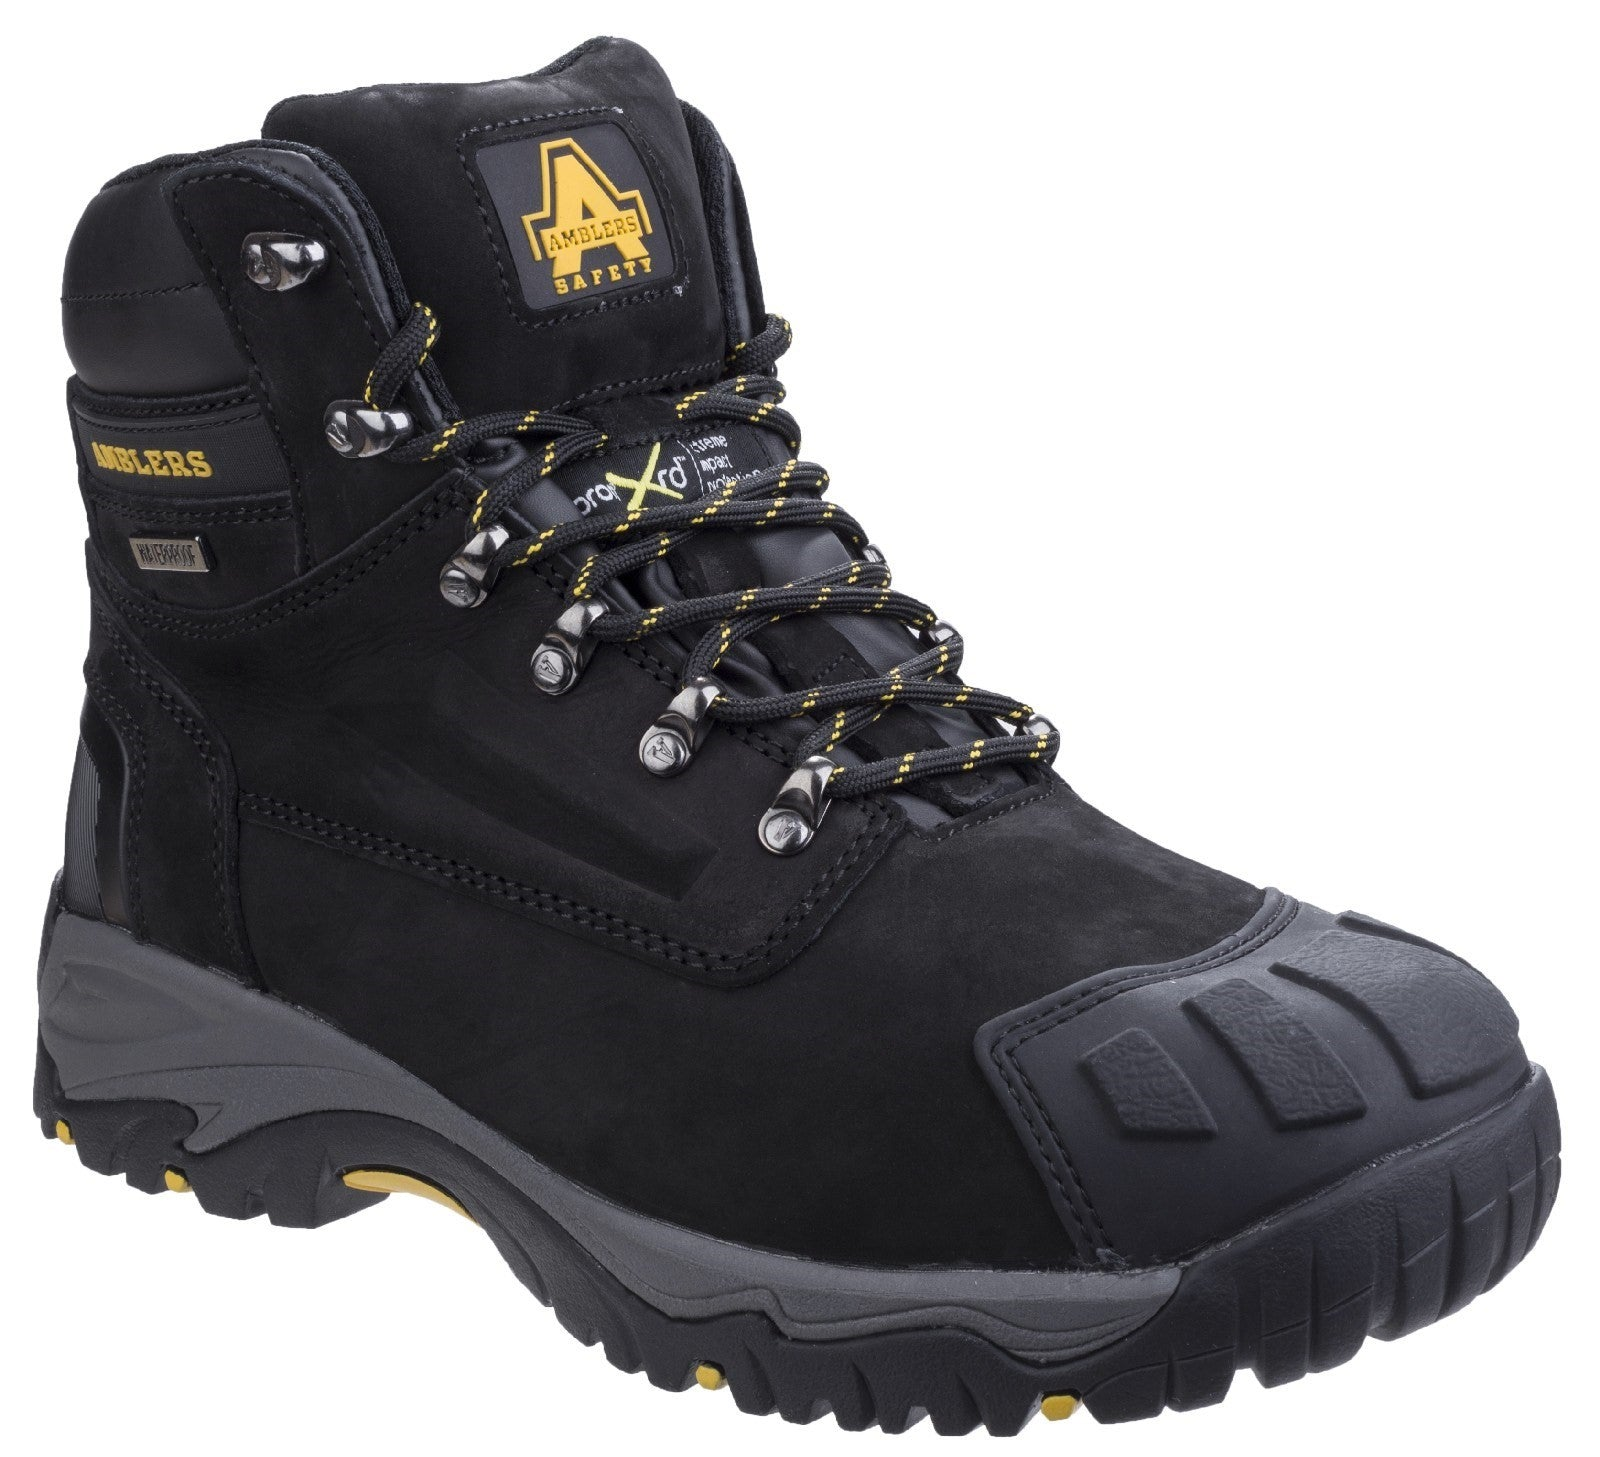 FS987 Metatarsal Protection Waterproof Lace Up Safety Boot